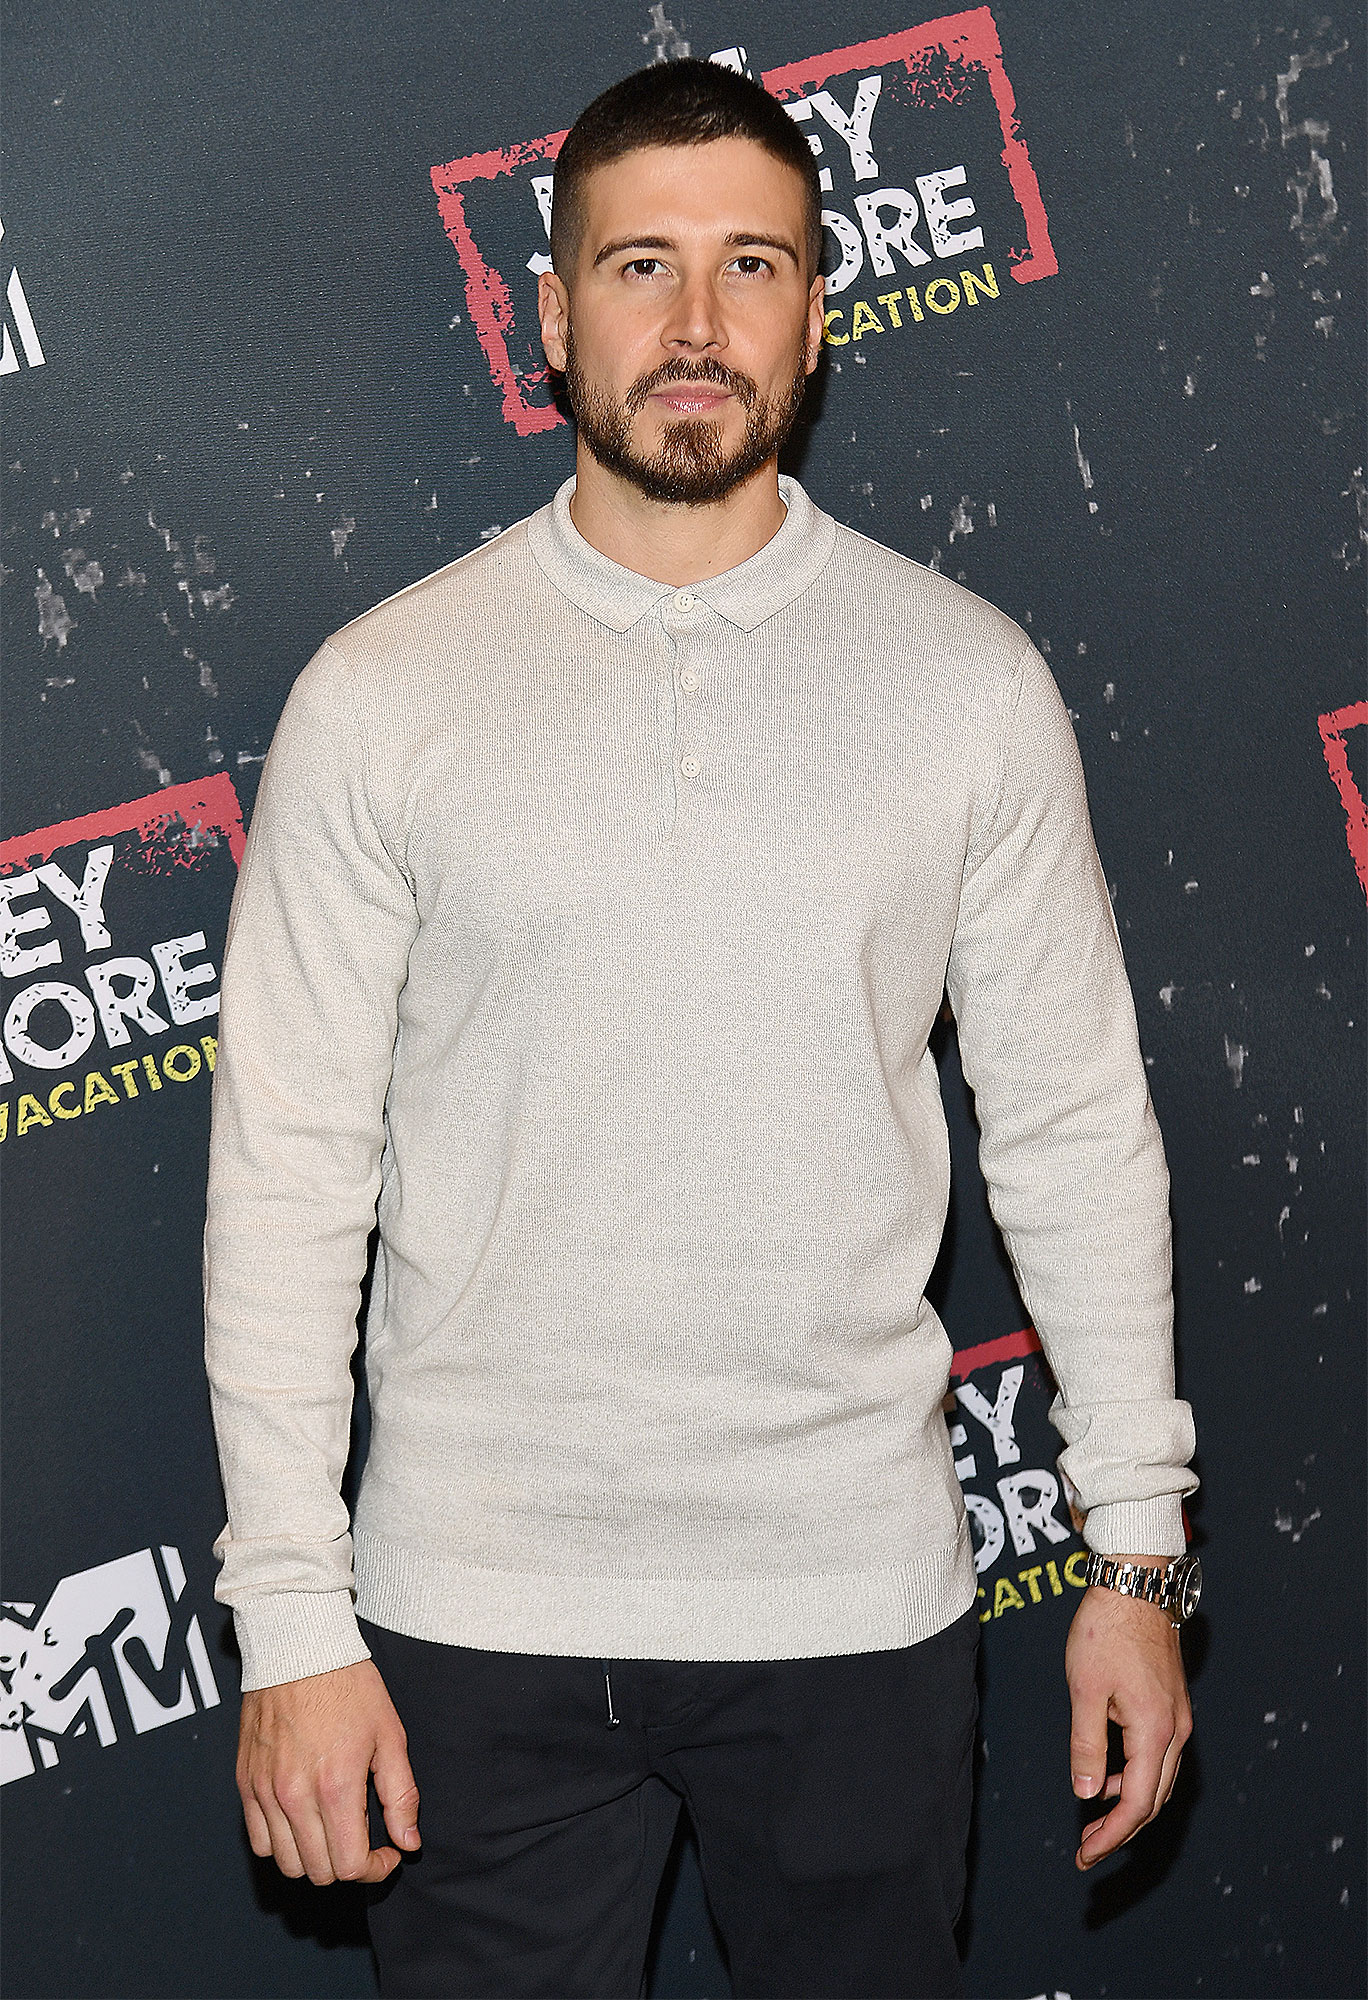 Jersey Shore star Vinny Guadagnino isnt ready to settle